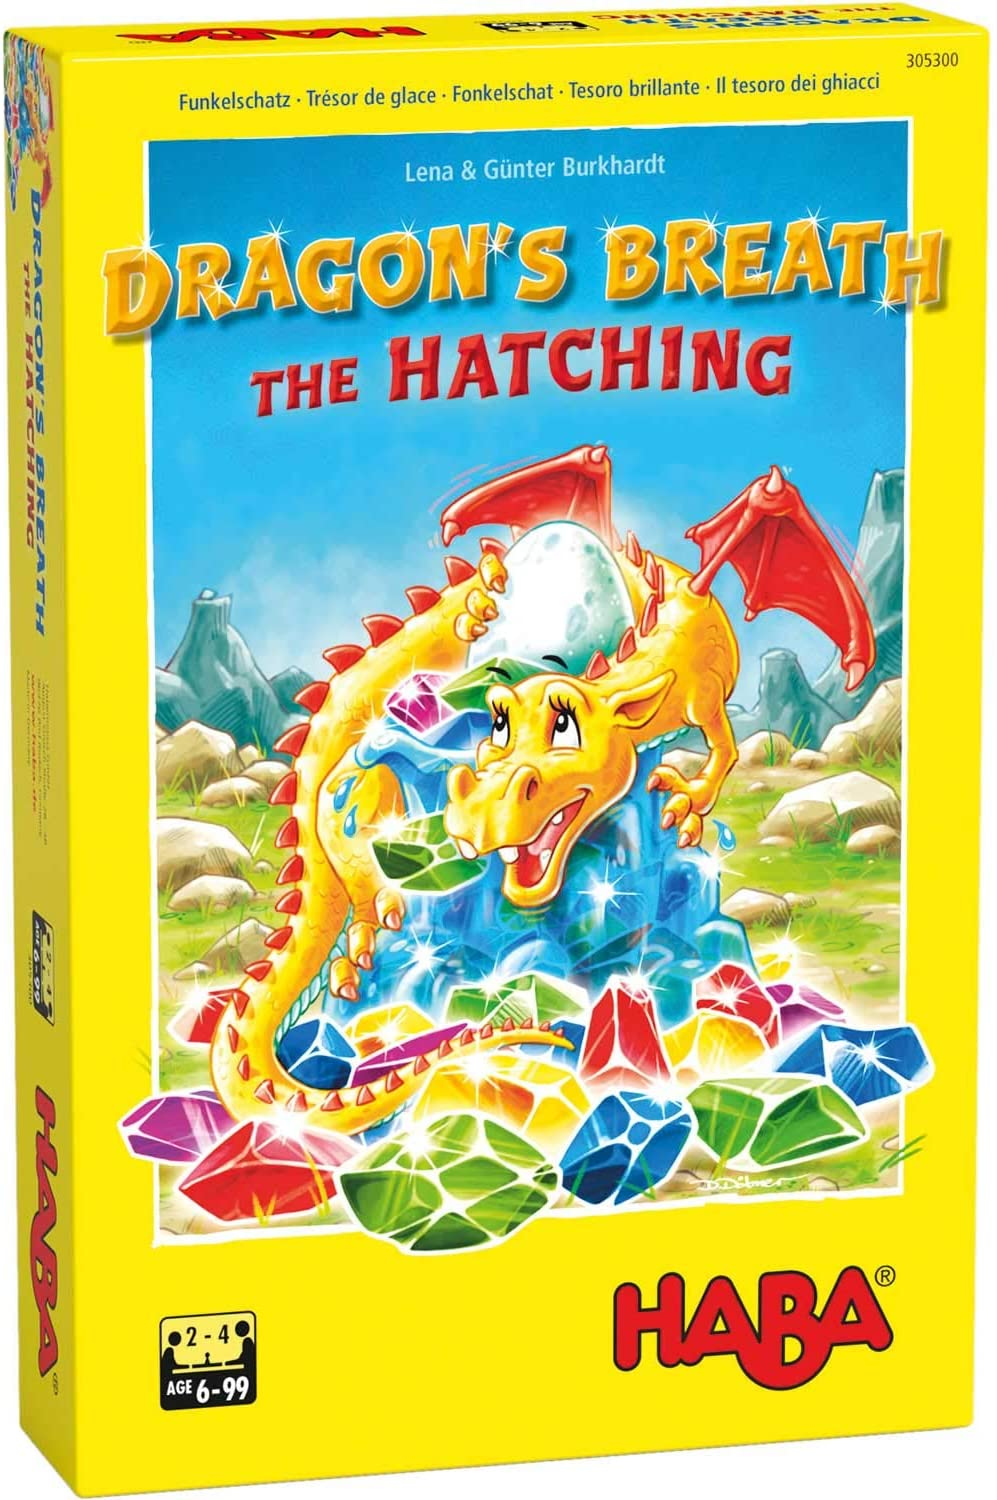 Dragon's Breath the Hatching 1